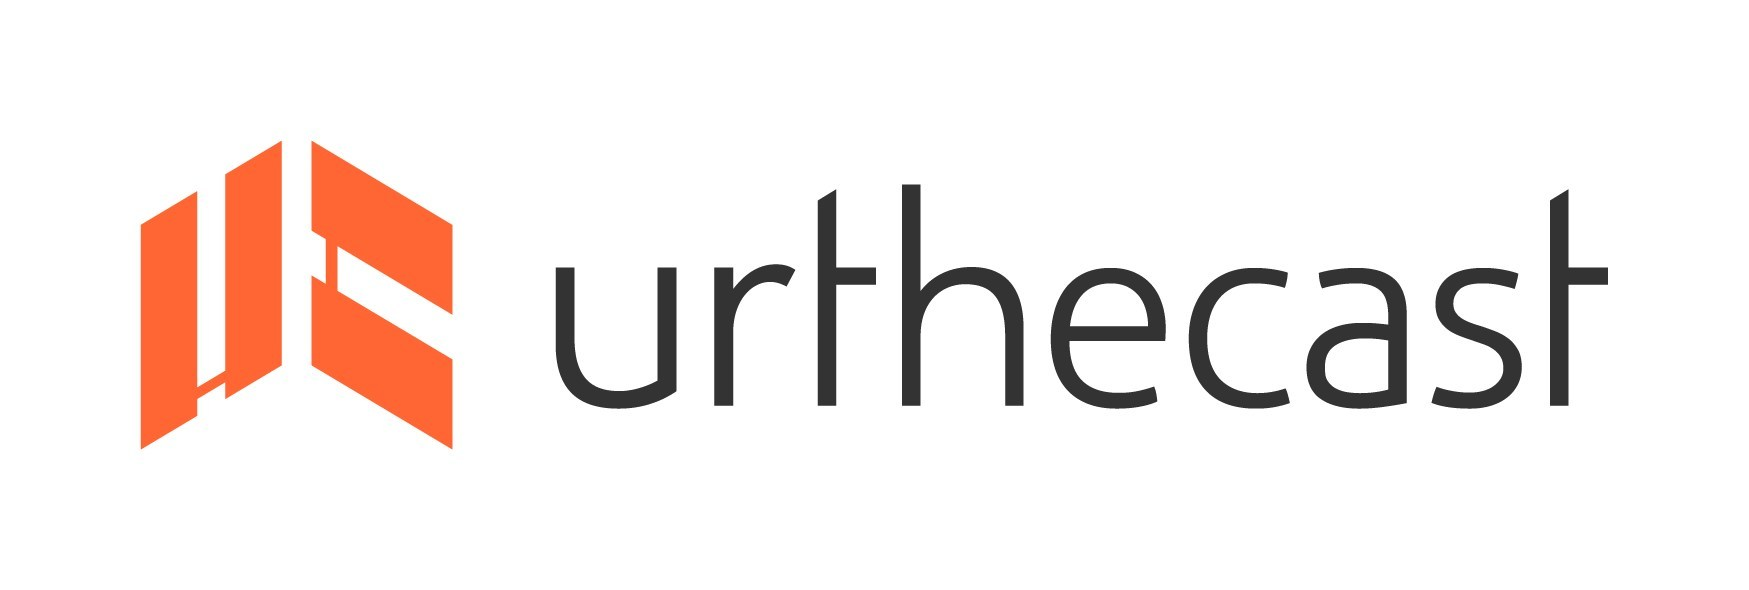 UrtheCast Corp. (CNW Group/UrtheCast Corp.)